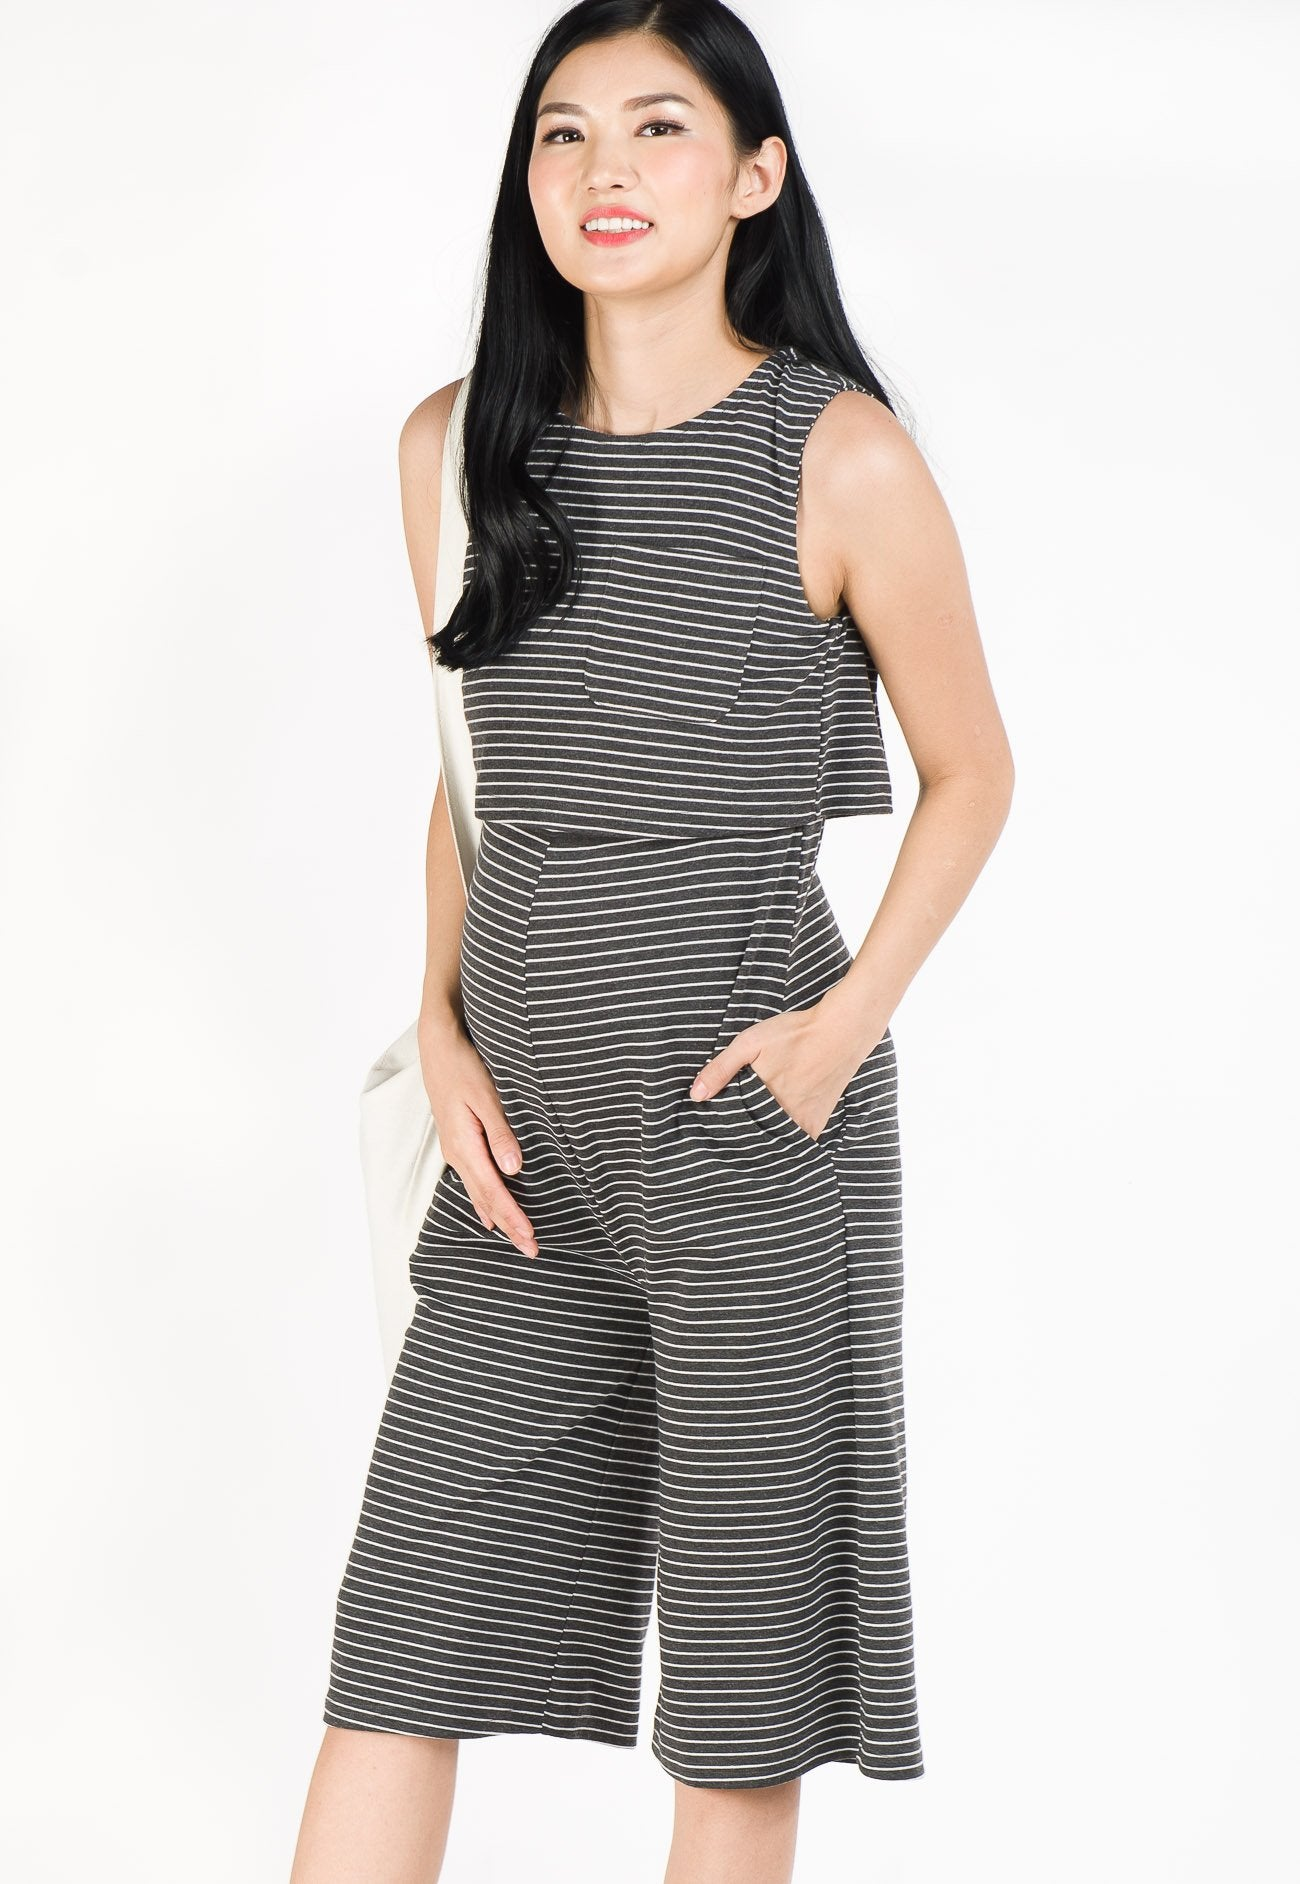 Taffy Striped Nursing Jumpsuit in Dark Grey  by Jump Eat Cry - Maternity and nursing wear